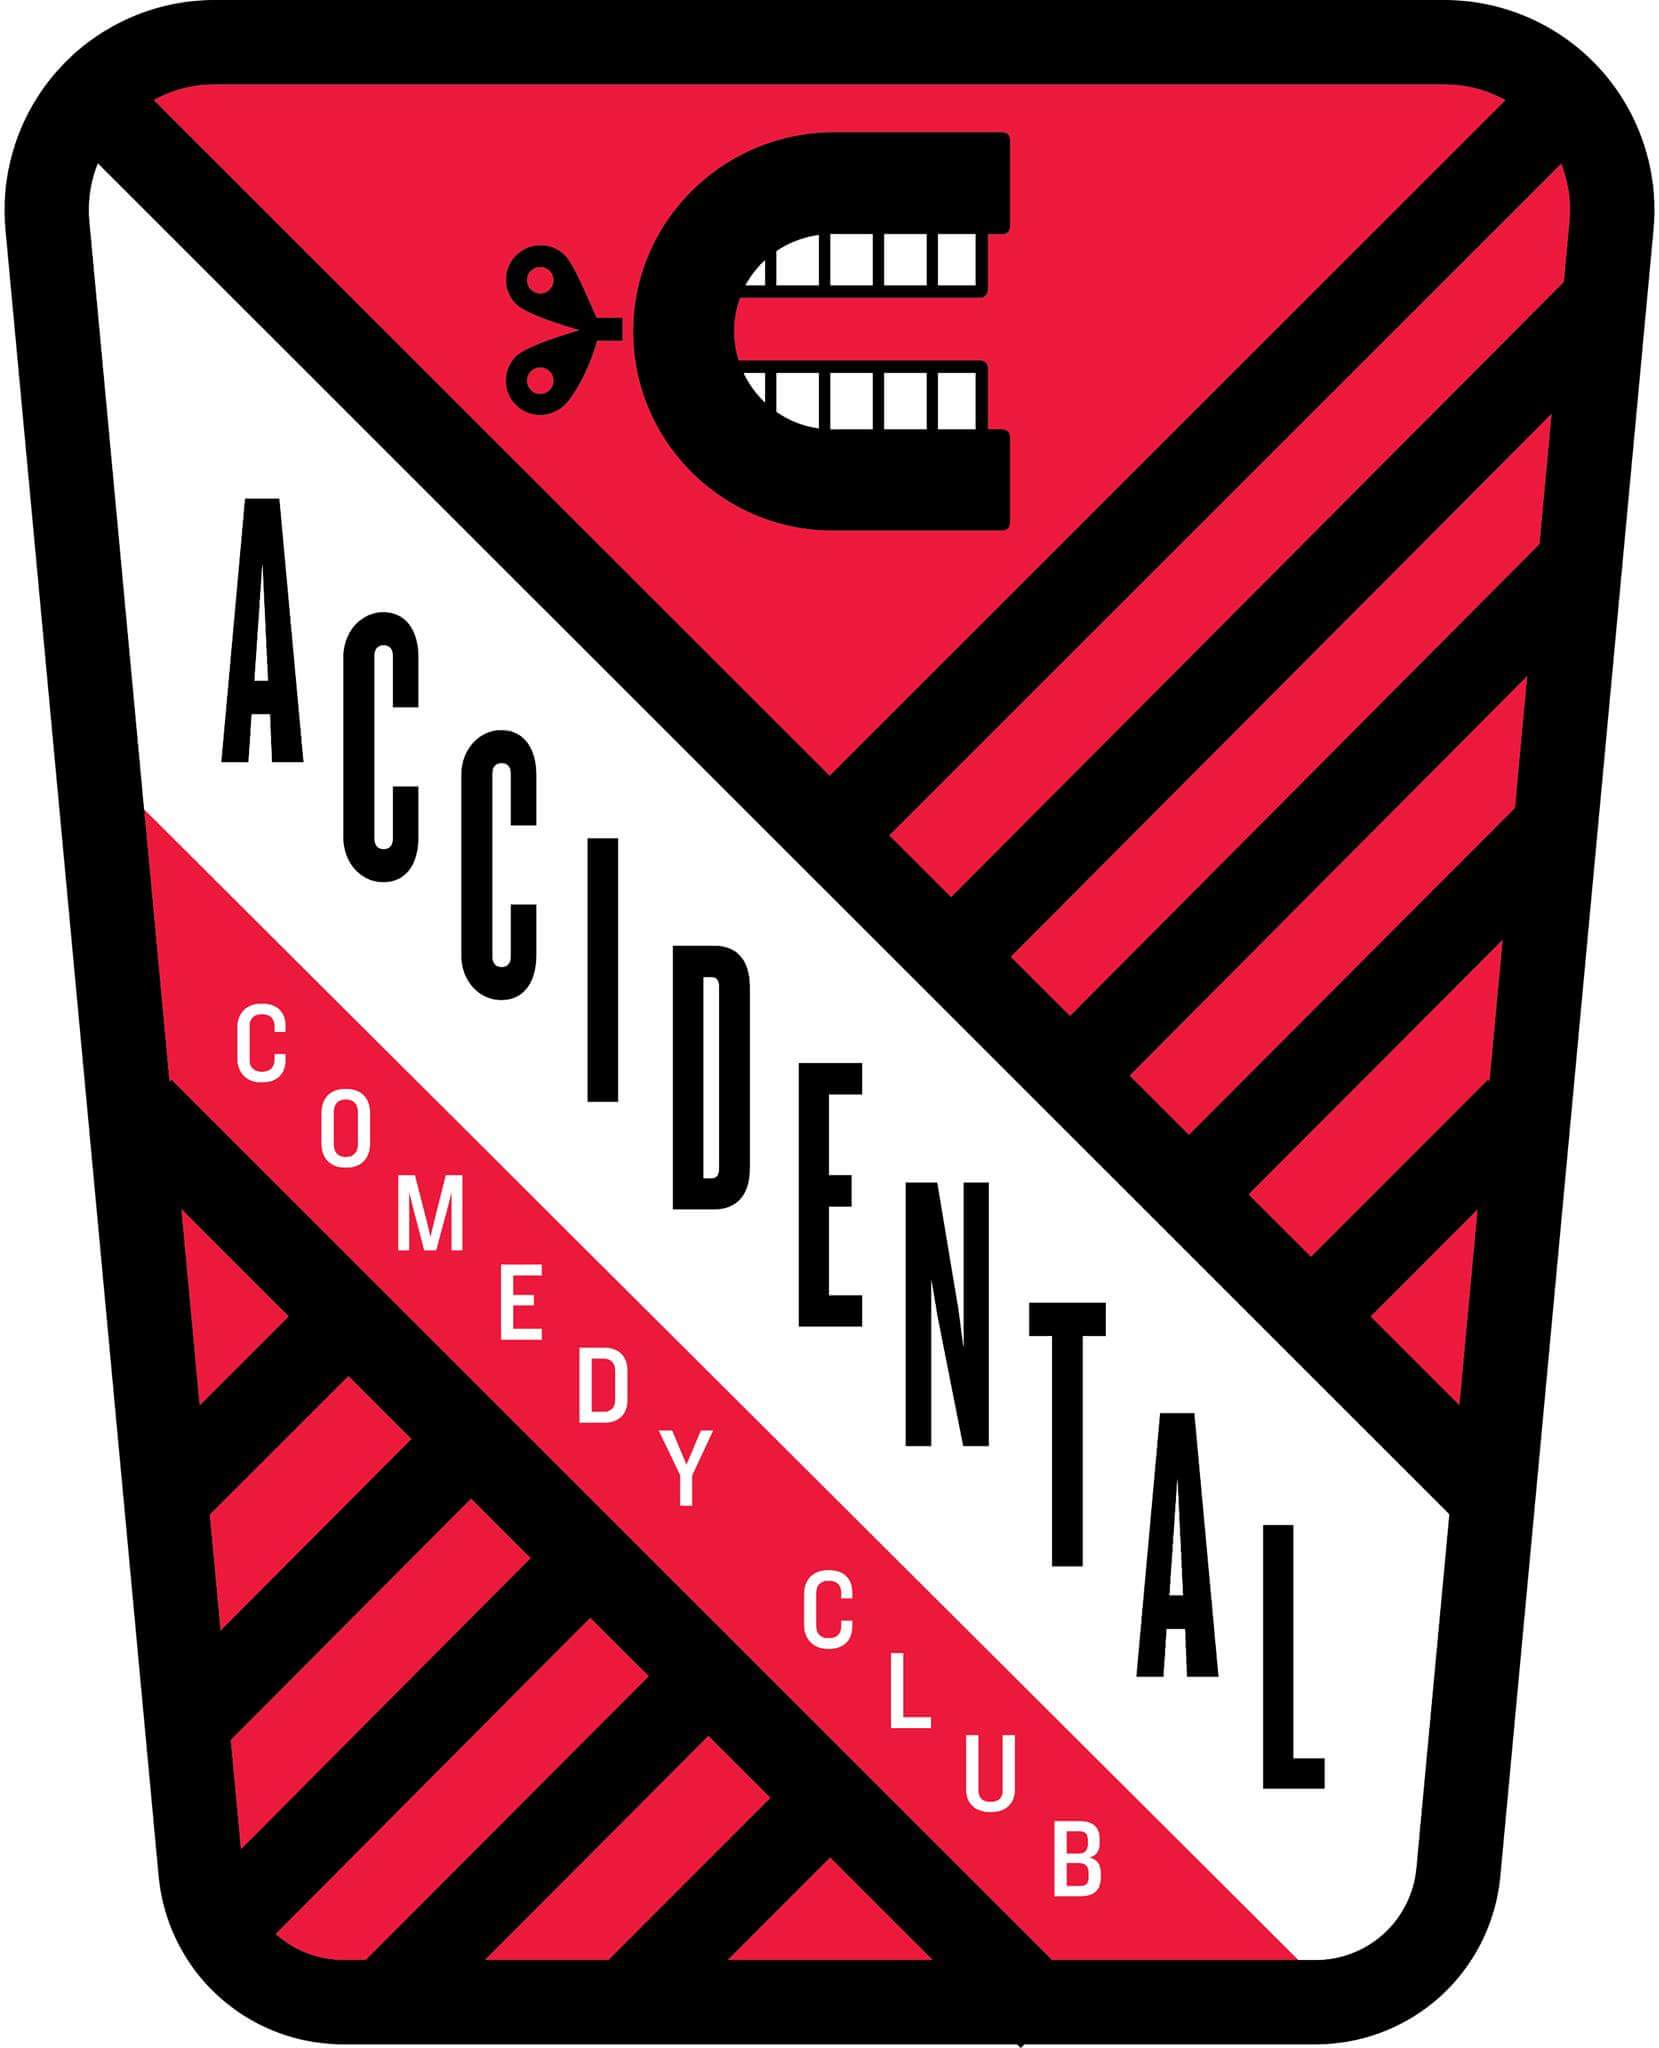 Joshua is a proud member of the Accidental Comedy Club. Click here to see all of the cool things Accidental Comedy is doing around Cleveland.